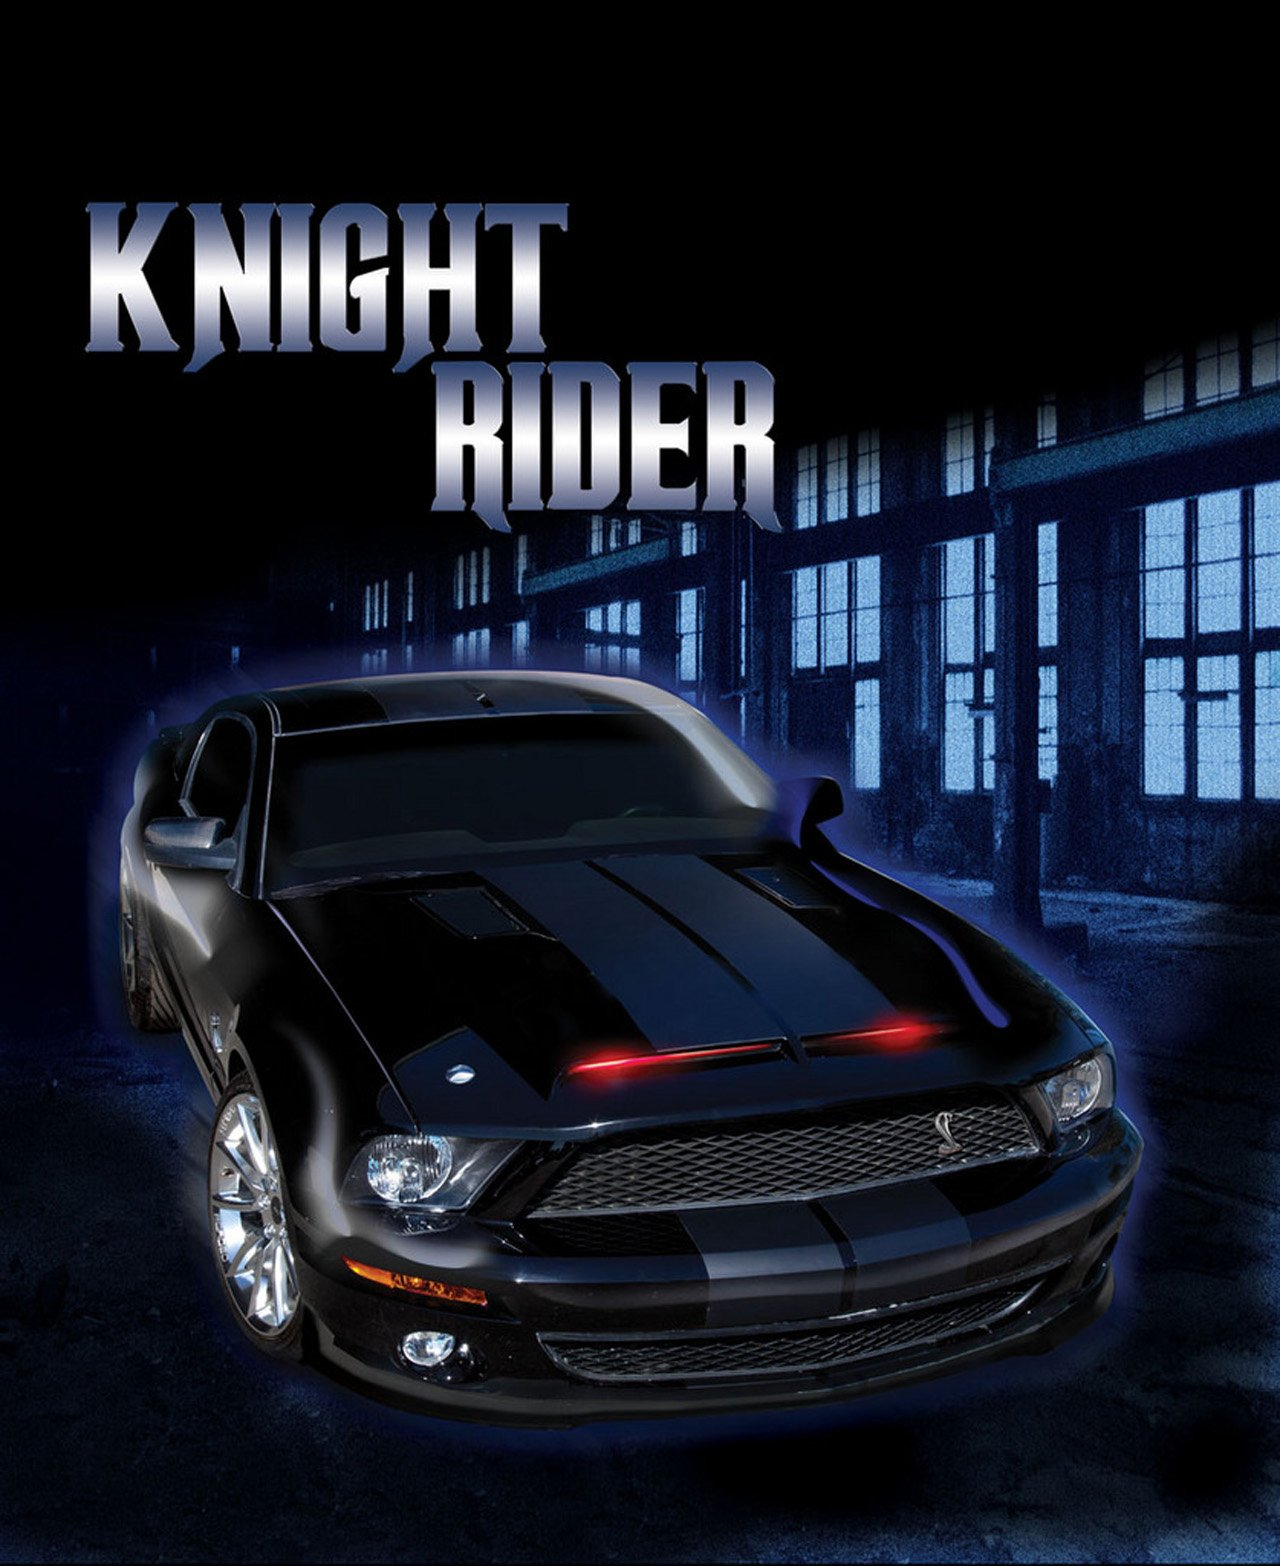 Knight Rider Ford Mustang K I T T  Car Heading to the Auction Block